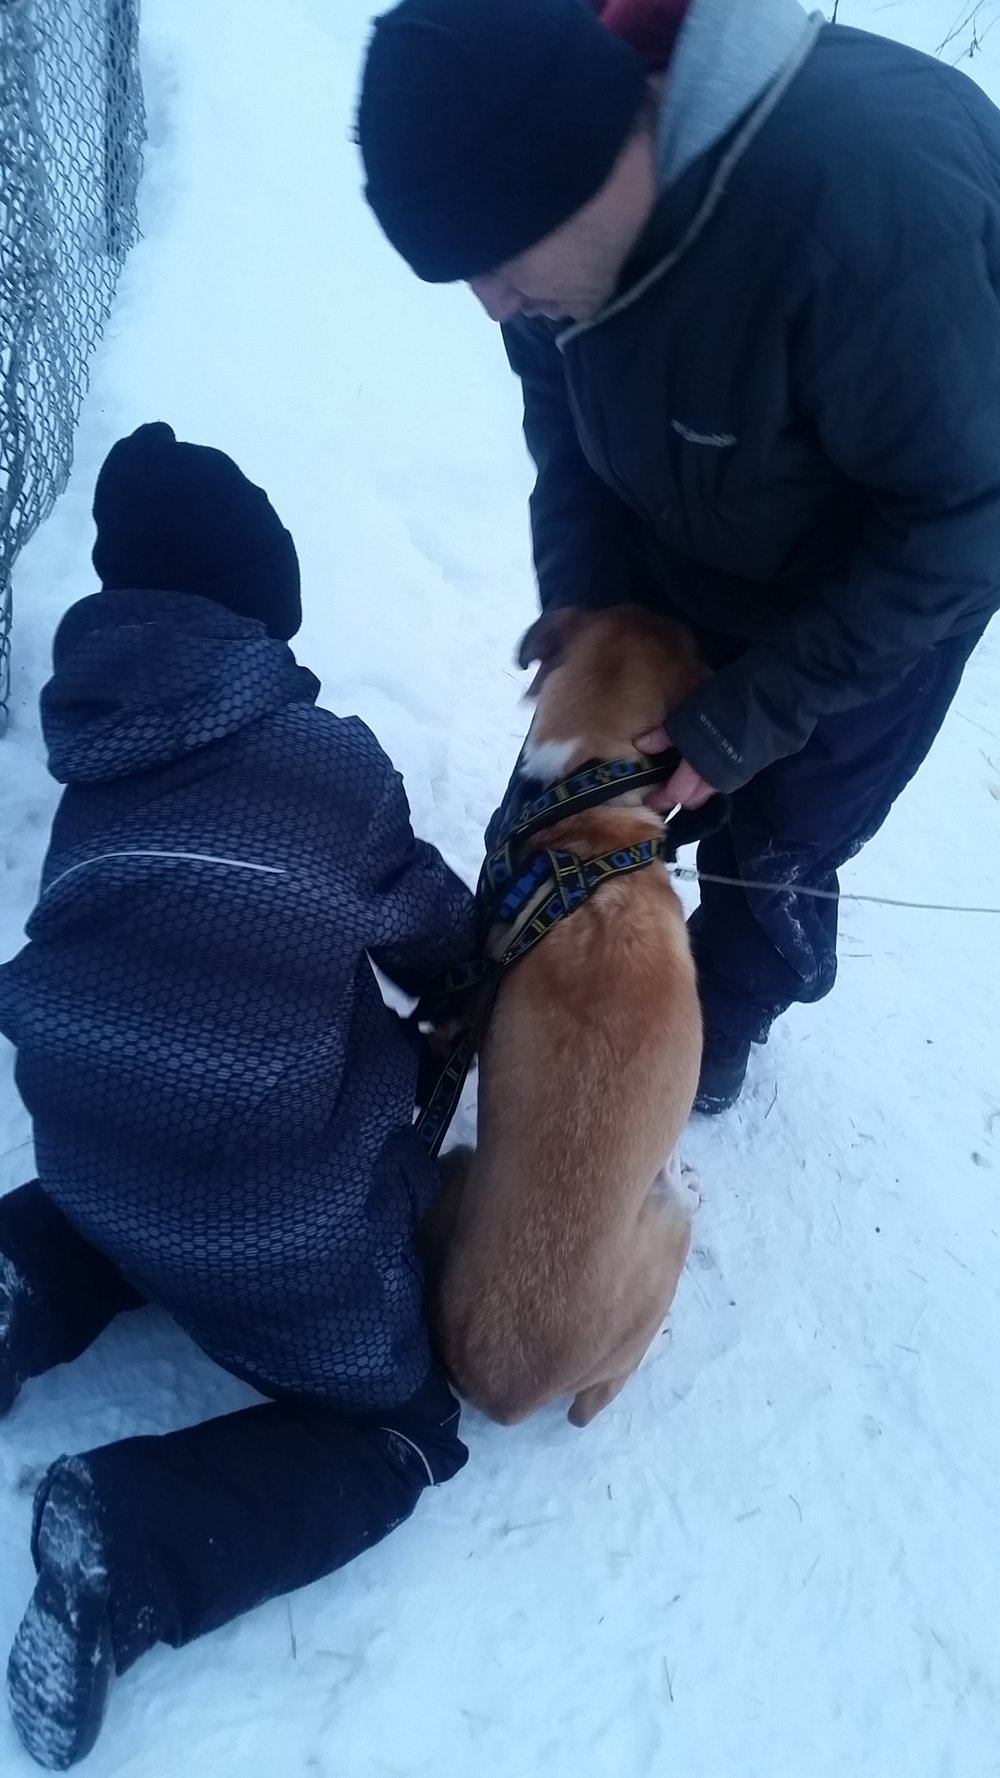 Dog musher teacher Charley Wofford helps a student harness a dog.